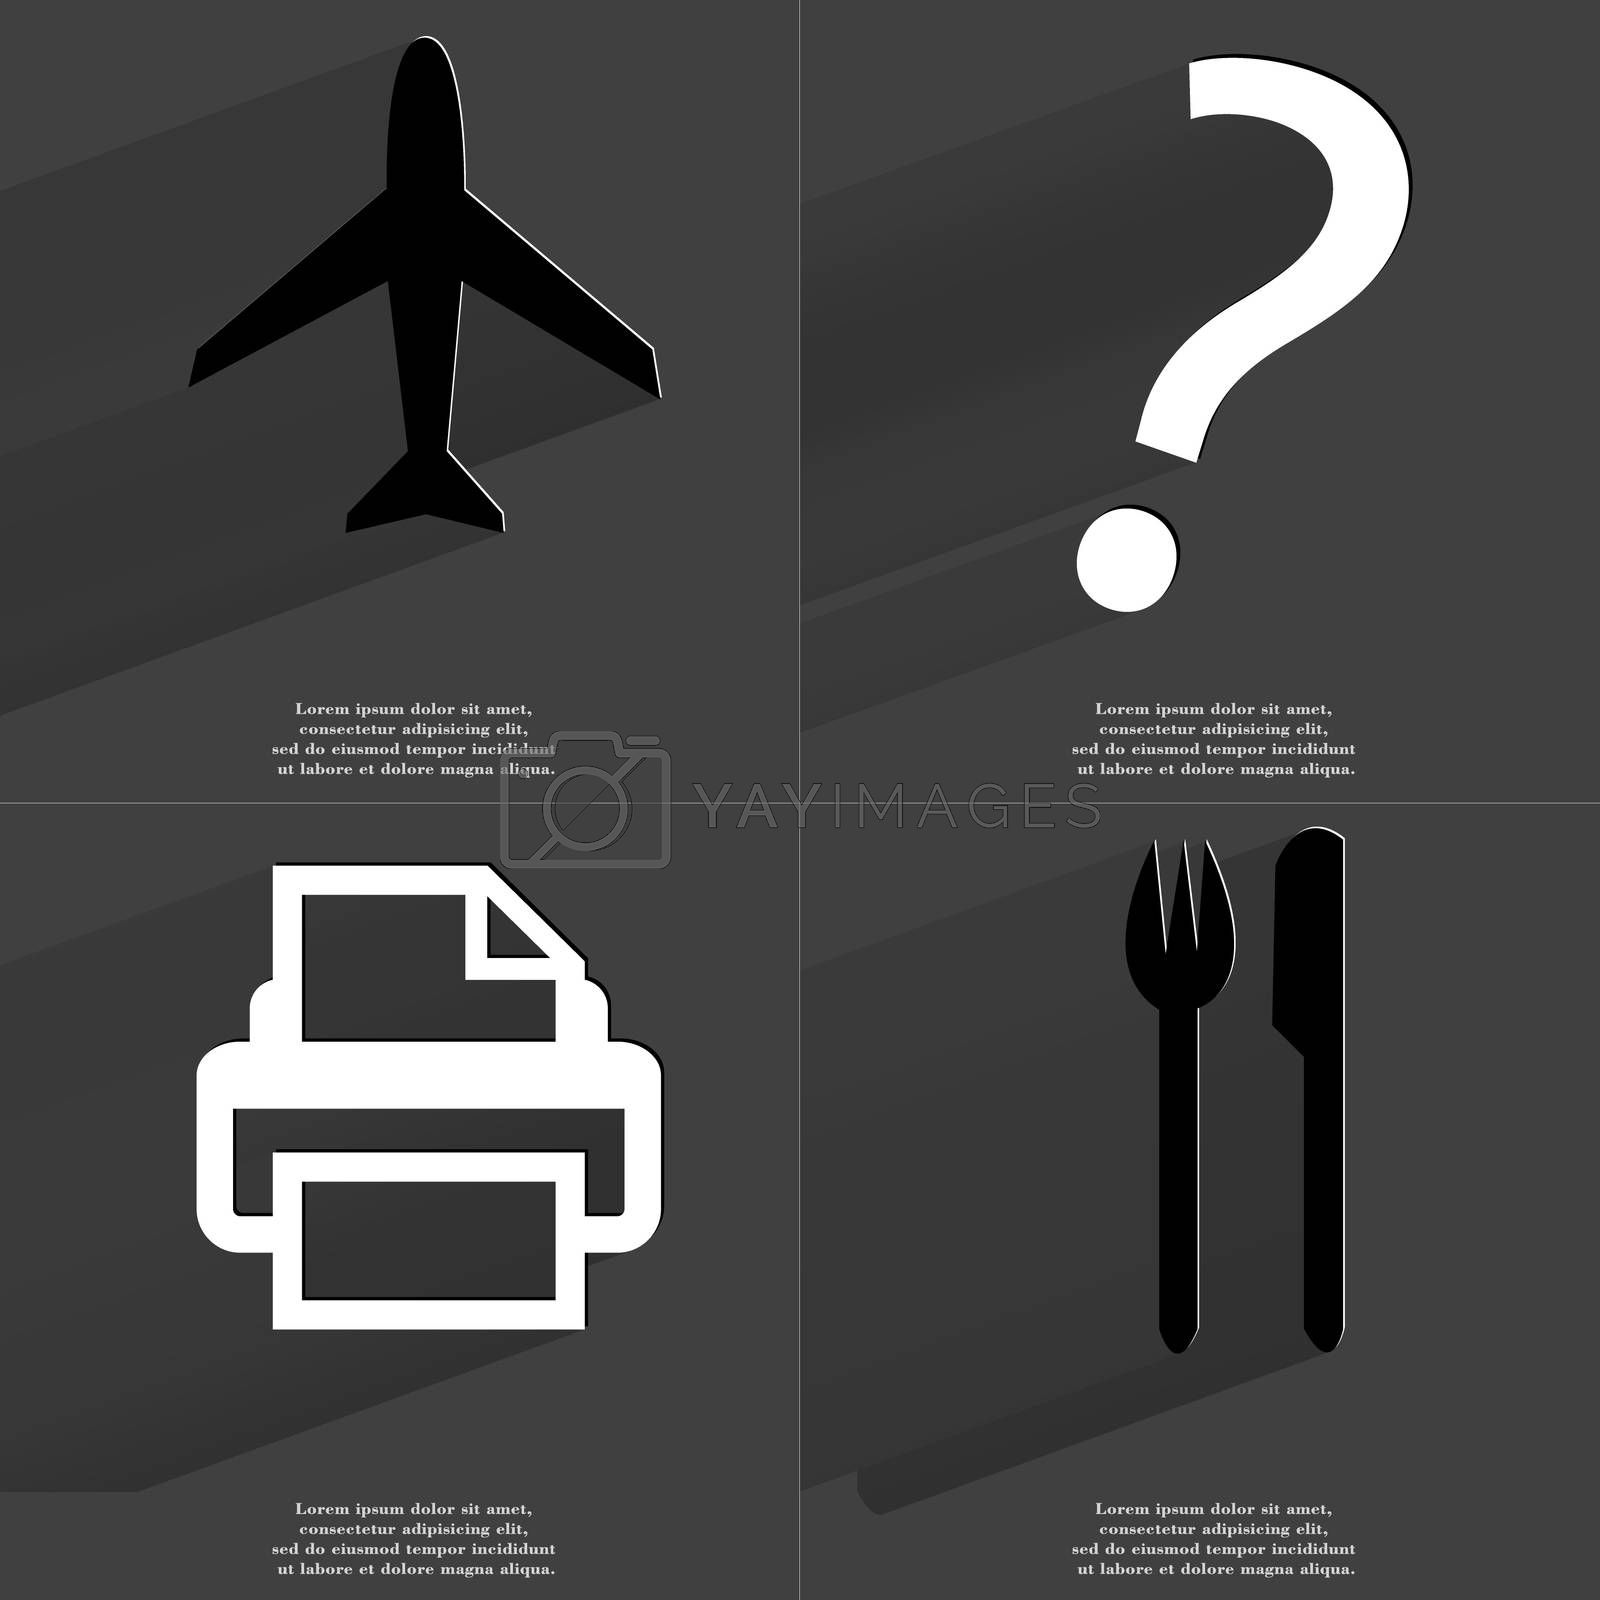 Royalty free image of Airplane, Question mark, Printer, Fork and knife. Symbols with long shadow. Flat design by serhii_lohvyniuk